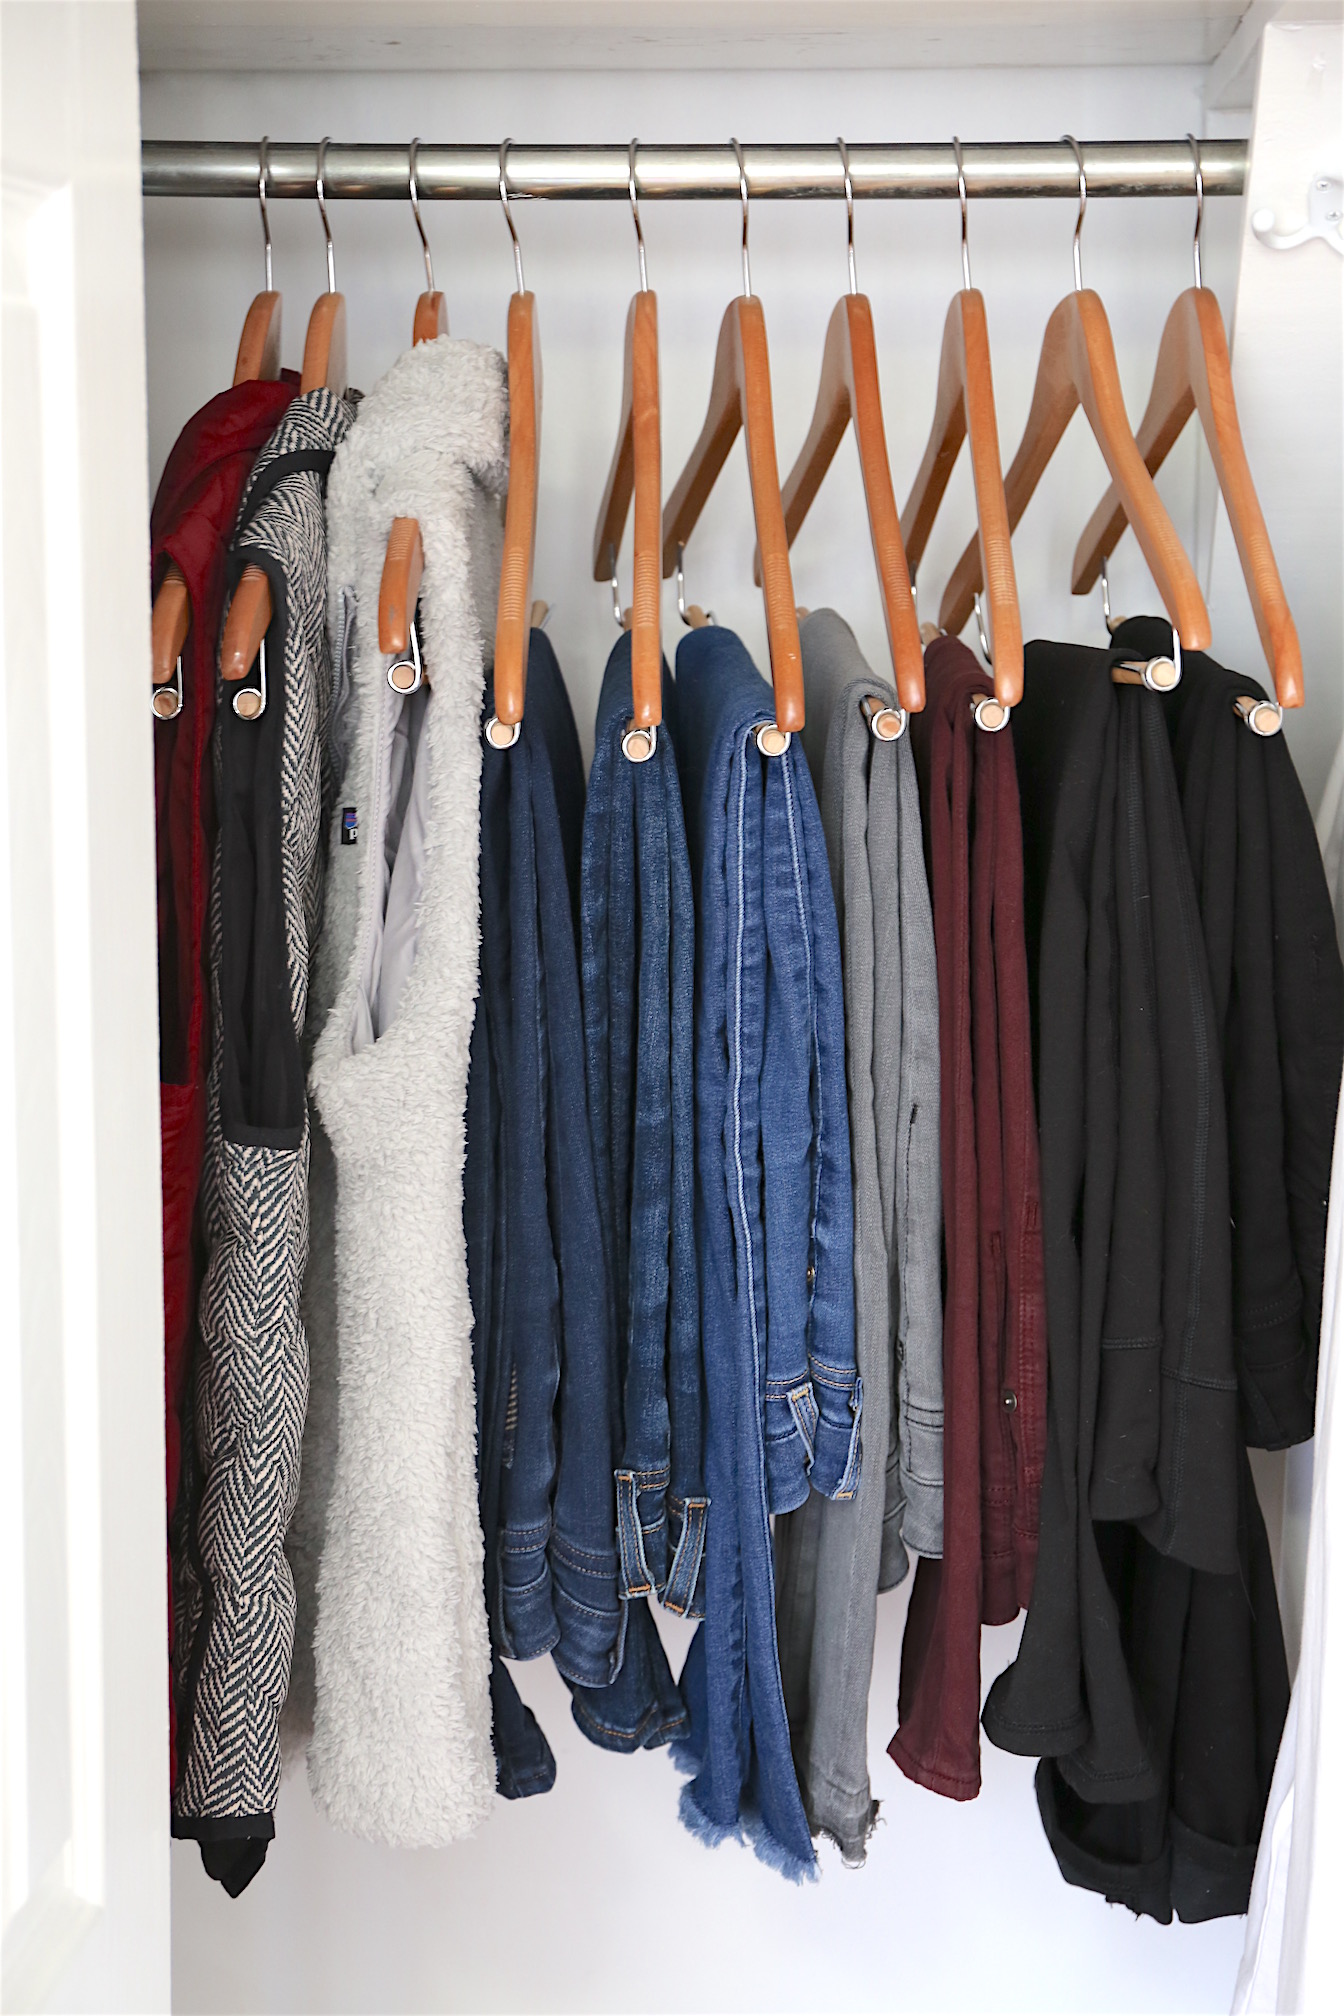 Winter 2017 Capsule Wardrobe - Bottoms and Vests